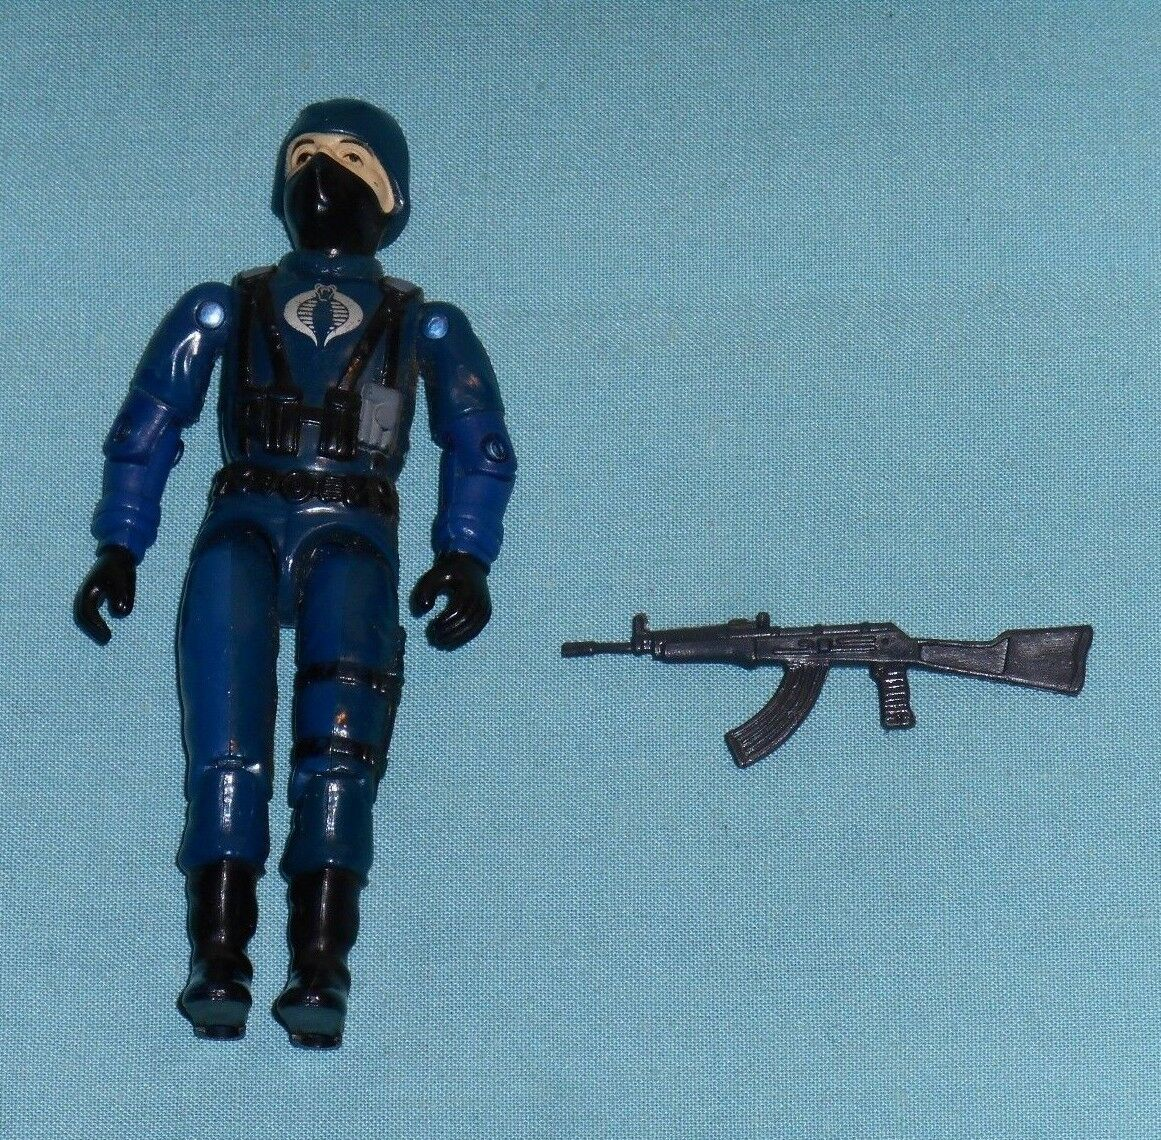 GI G.I. Joe gijoe COBRA OFFICER with original weapon